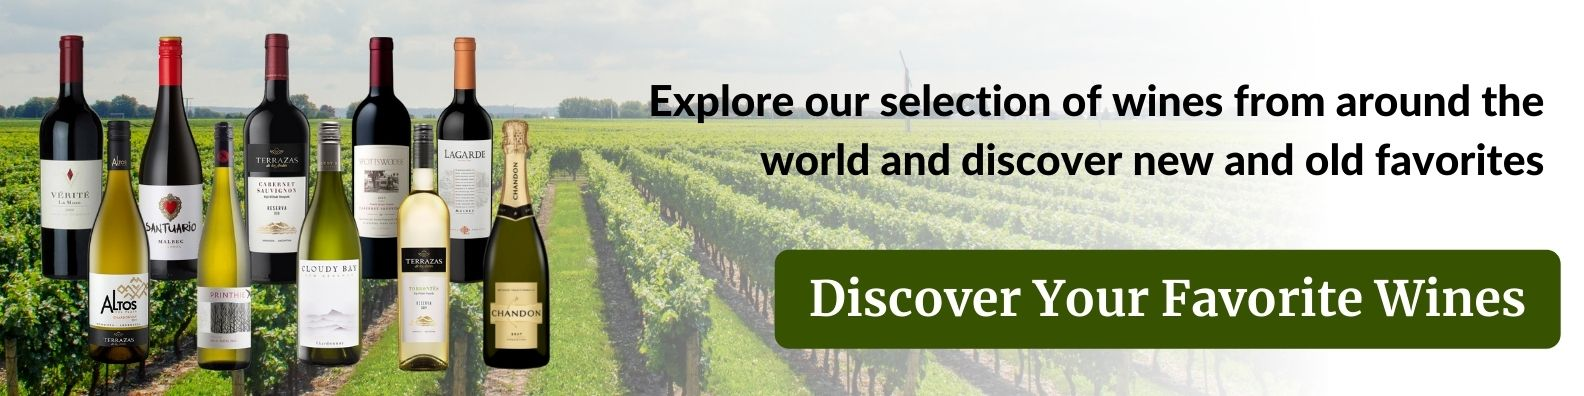 shop award winning wines at the best prices in the philippines